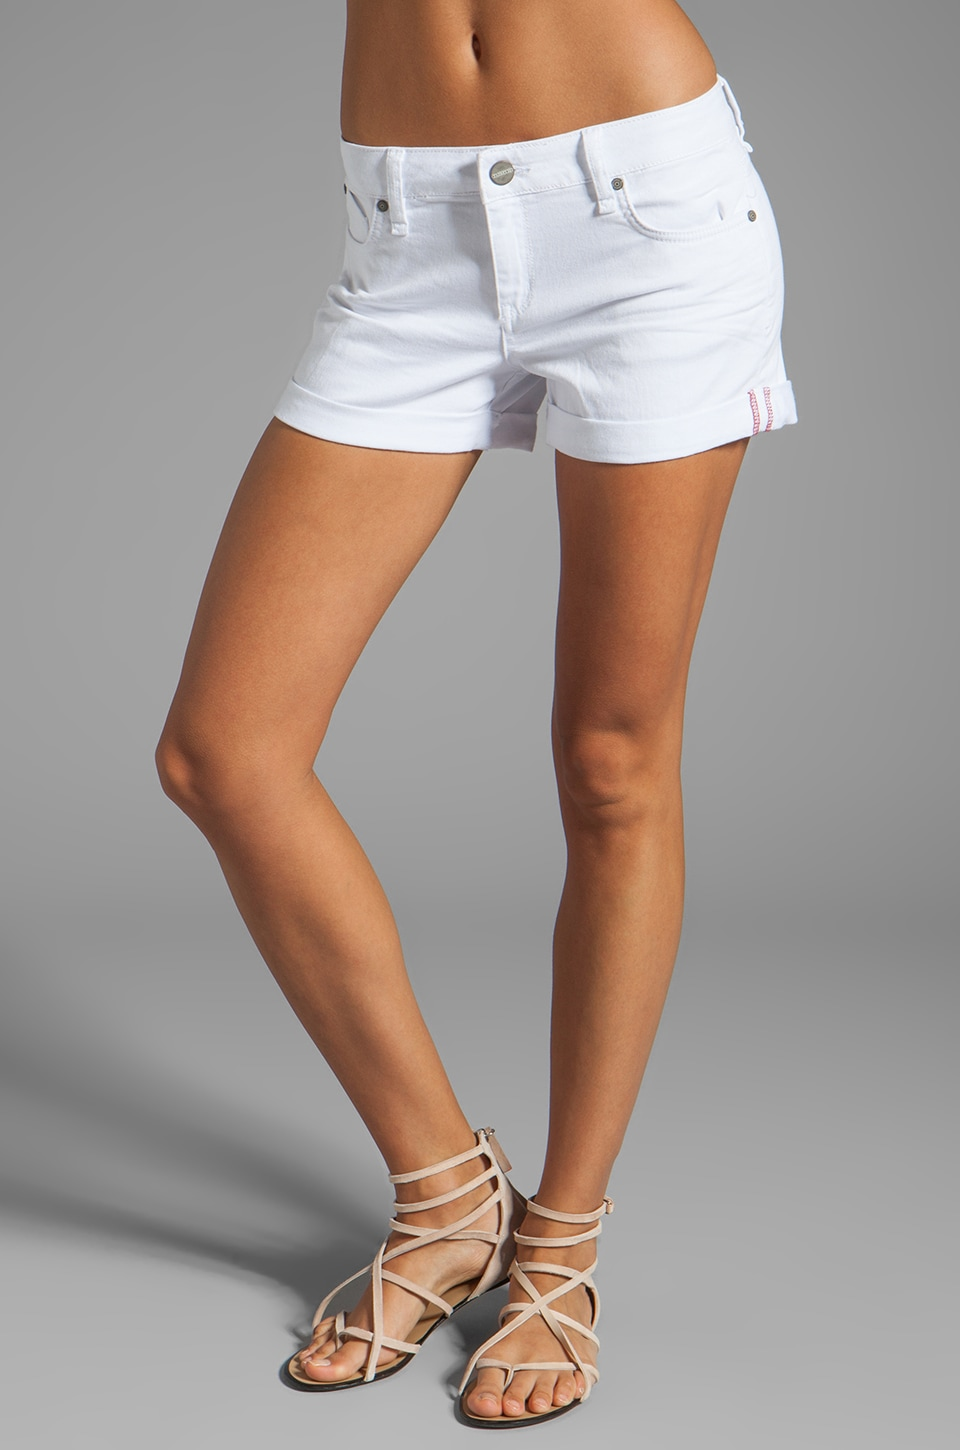 Sanctuary Perfect Fit Short in White